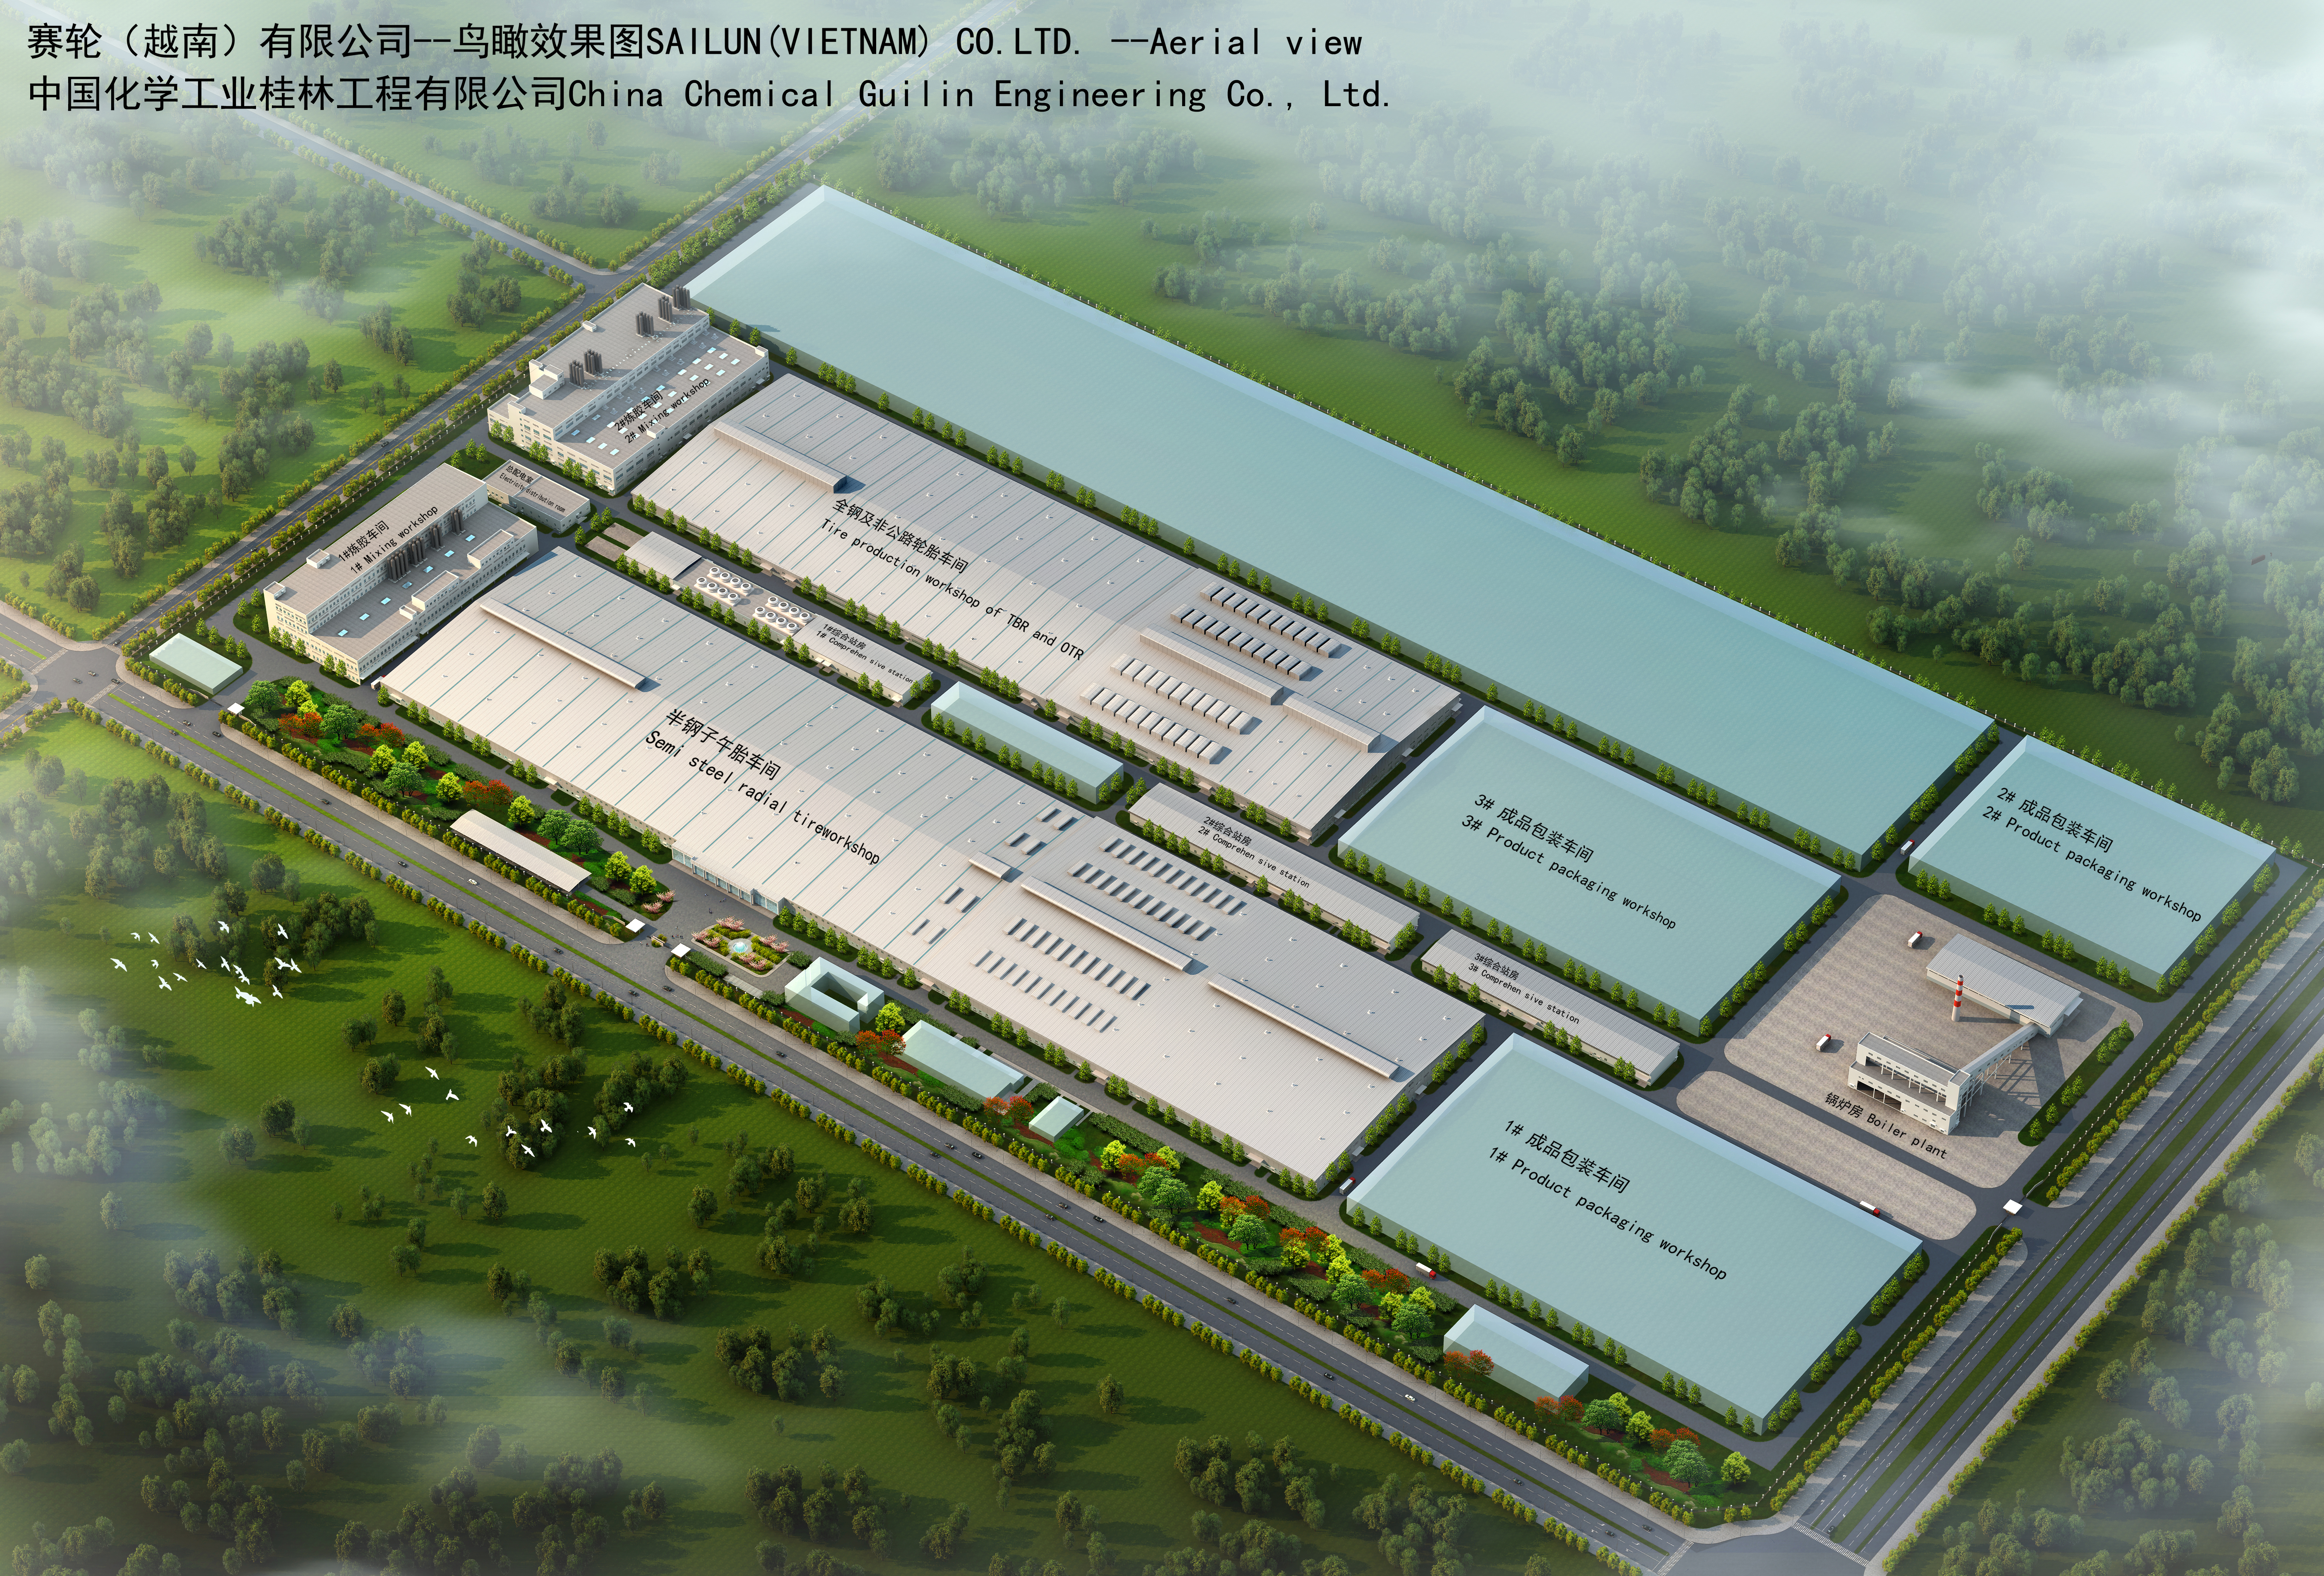 Lu Thai Spinning Factory Project (Vietnam)